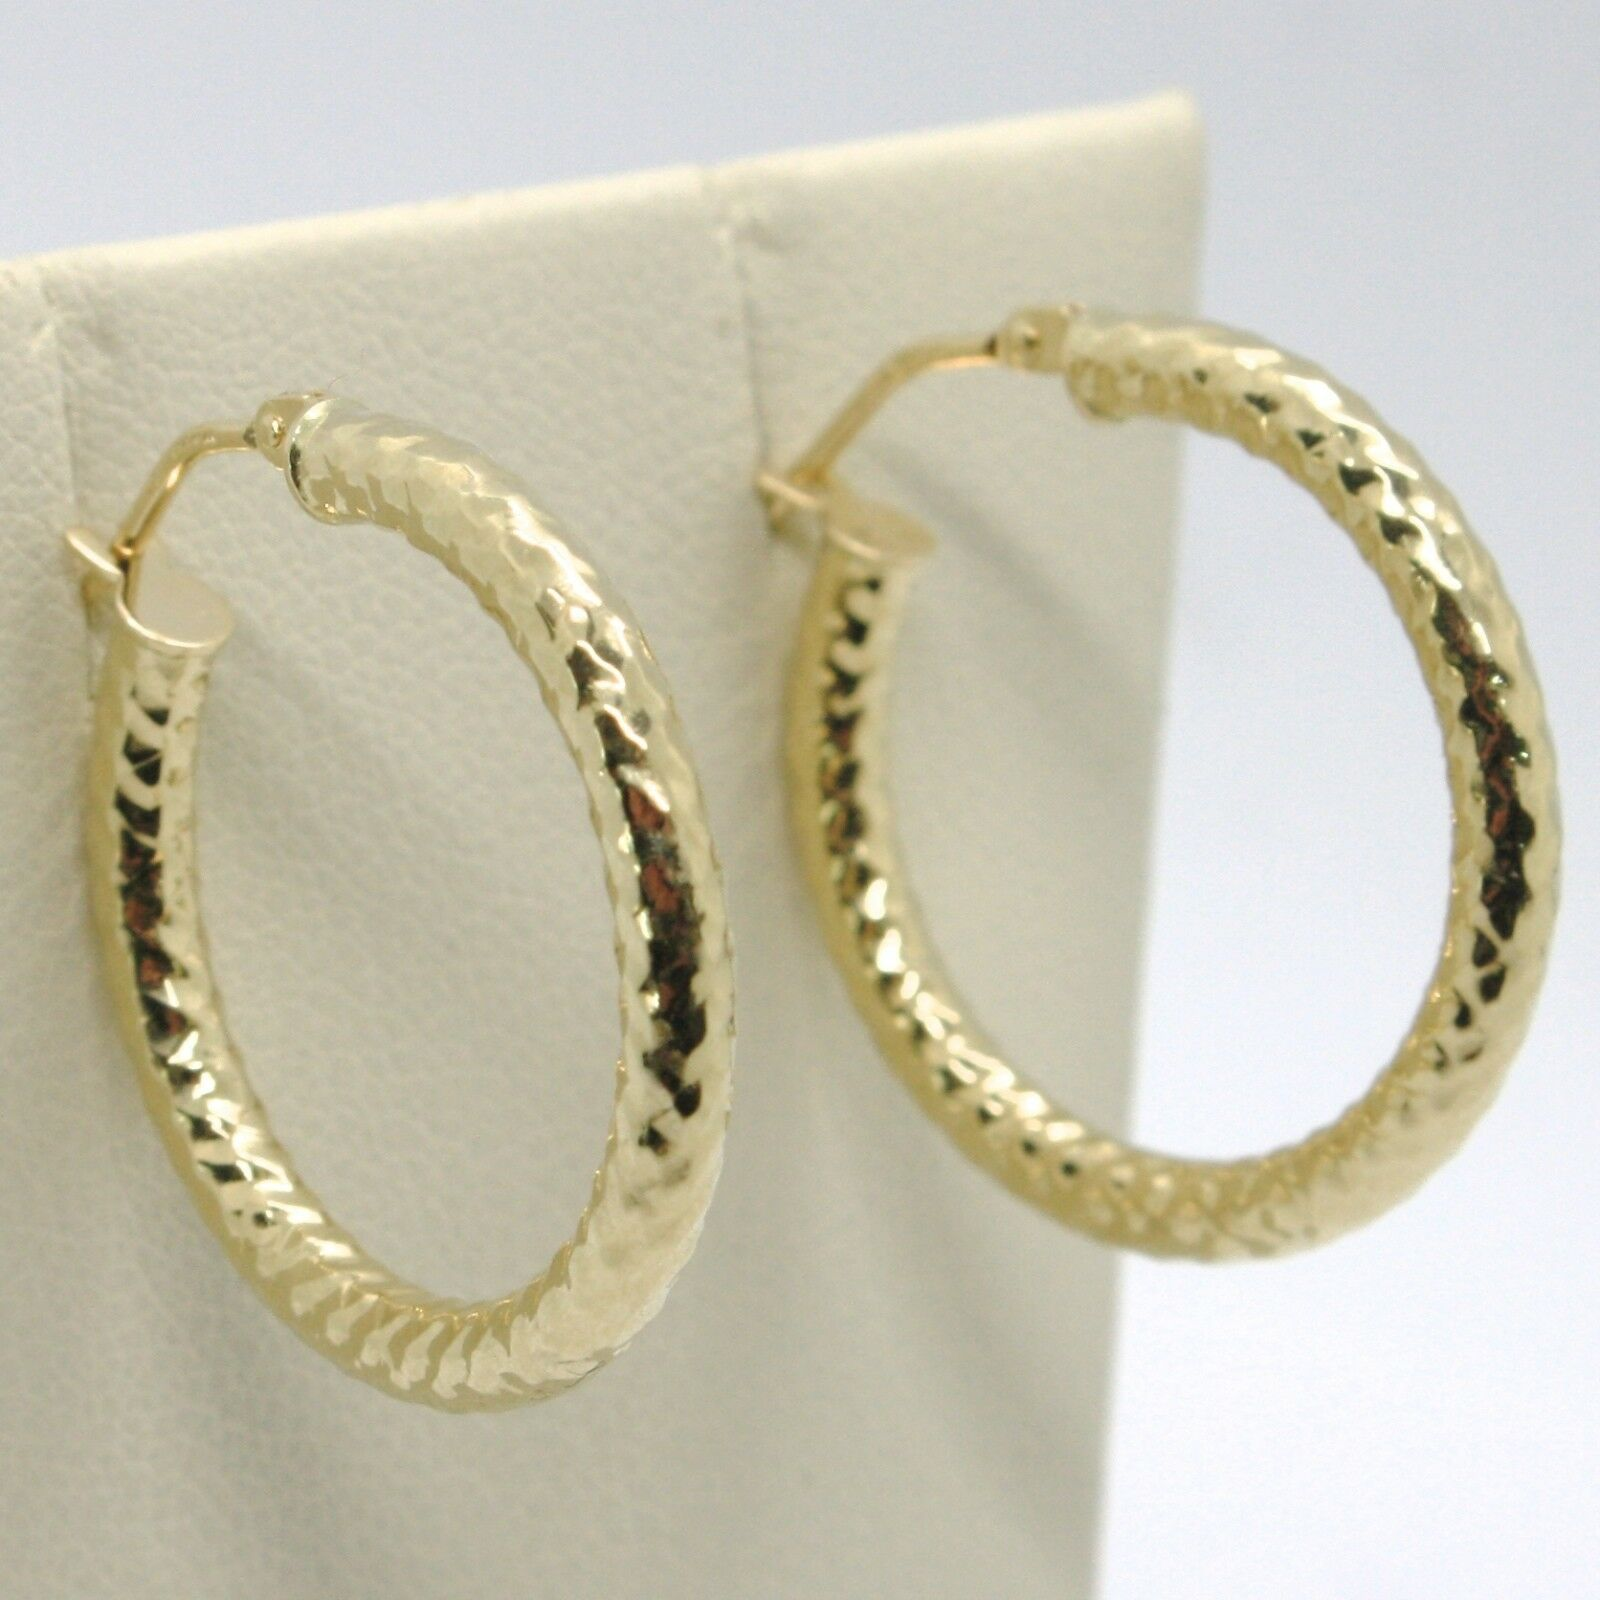 18K YELLOW GOLD CIRCLE HOOPS TUBE TWISTED HAMMERED EARRINGS 25 MM, MADE IN ITALY